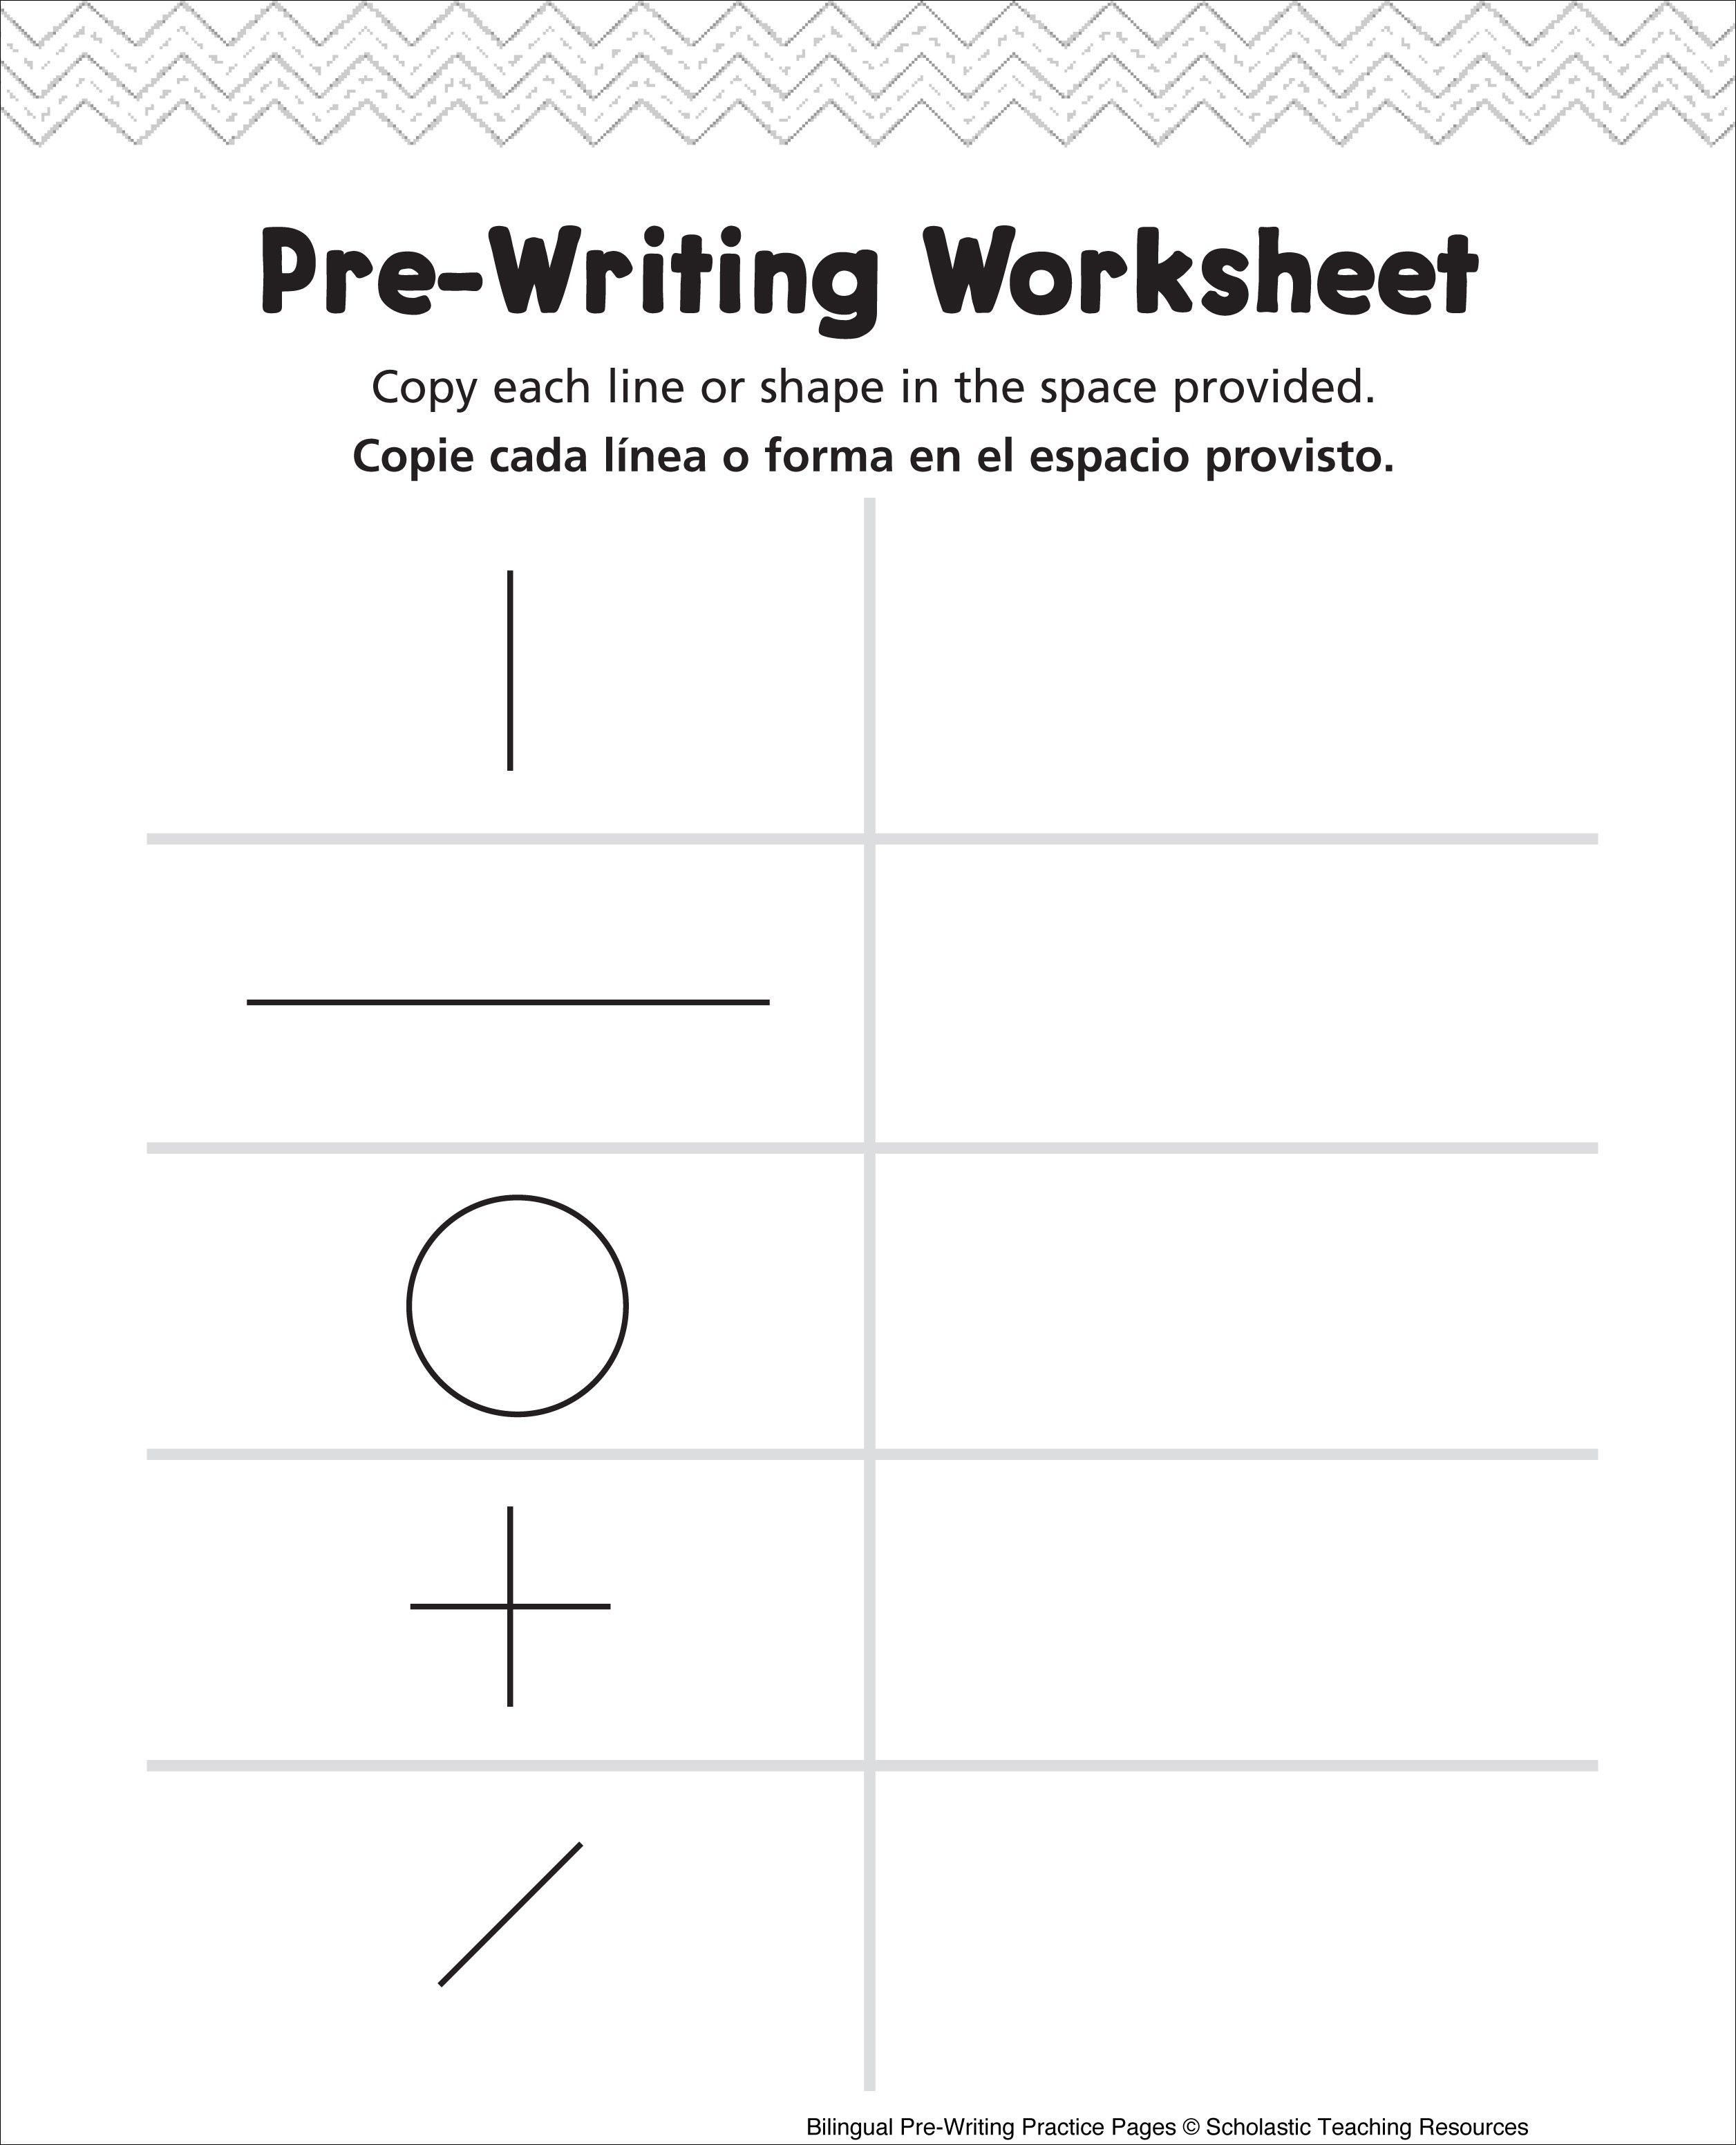 Pre Writing Worksheet Bilingual Practice Page